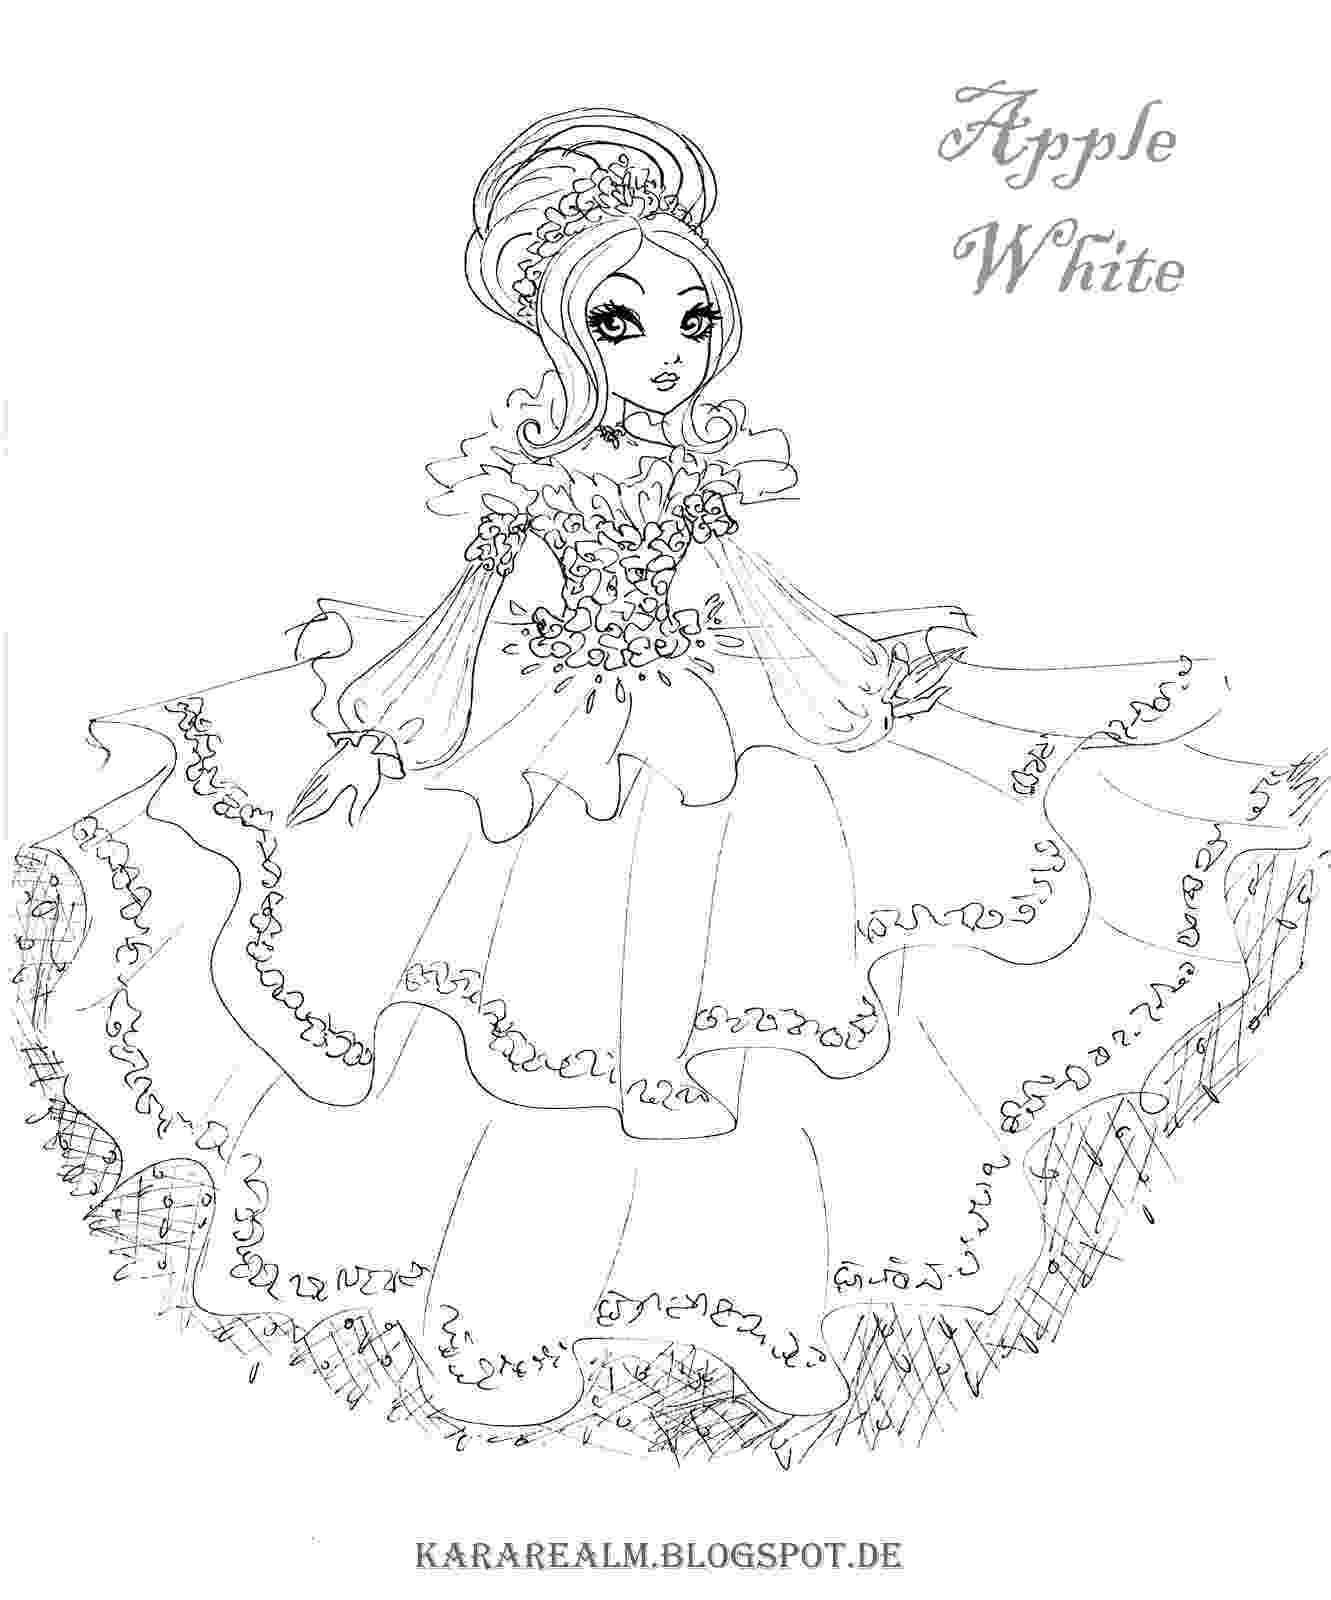 free ever after high printables free printable ever after high coloring pages madeline free printables after ever high